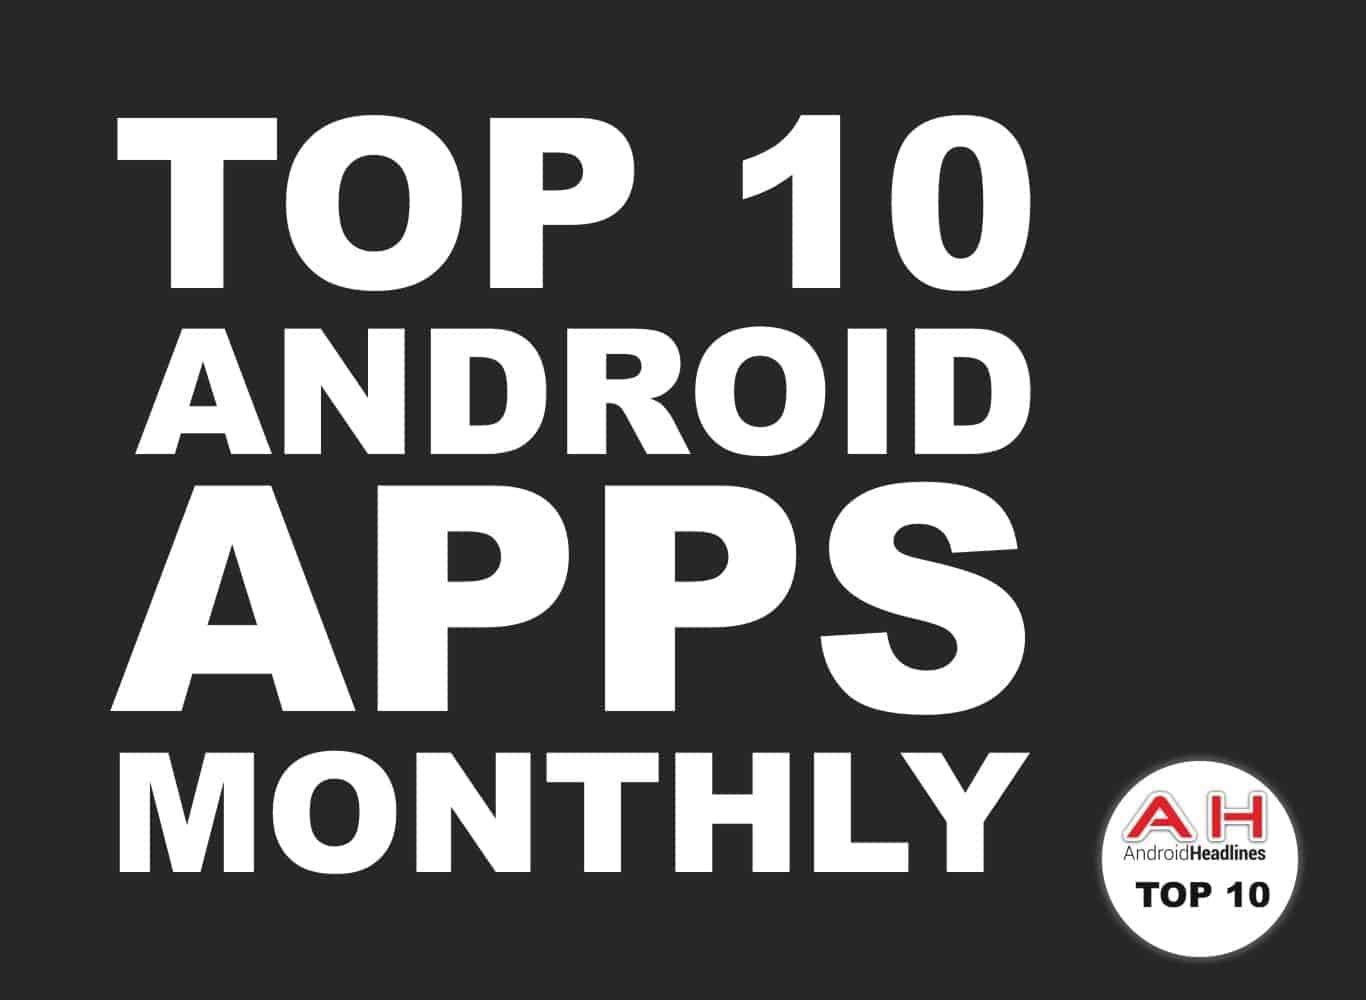 AH NEW TOP 10 ANDROID APPS MONTHLY Feature Image